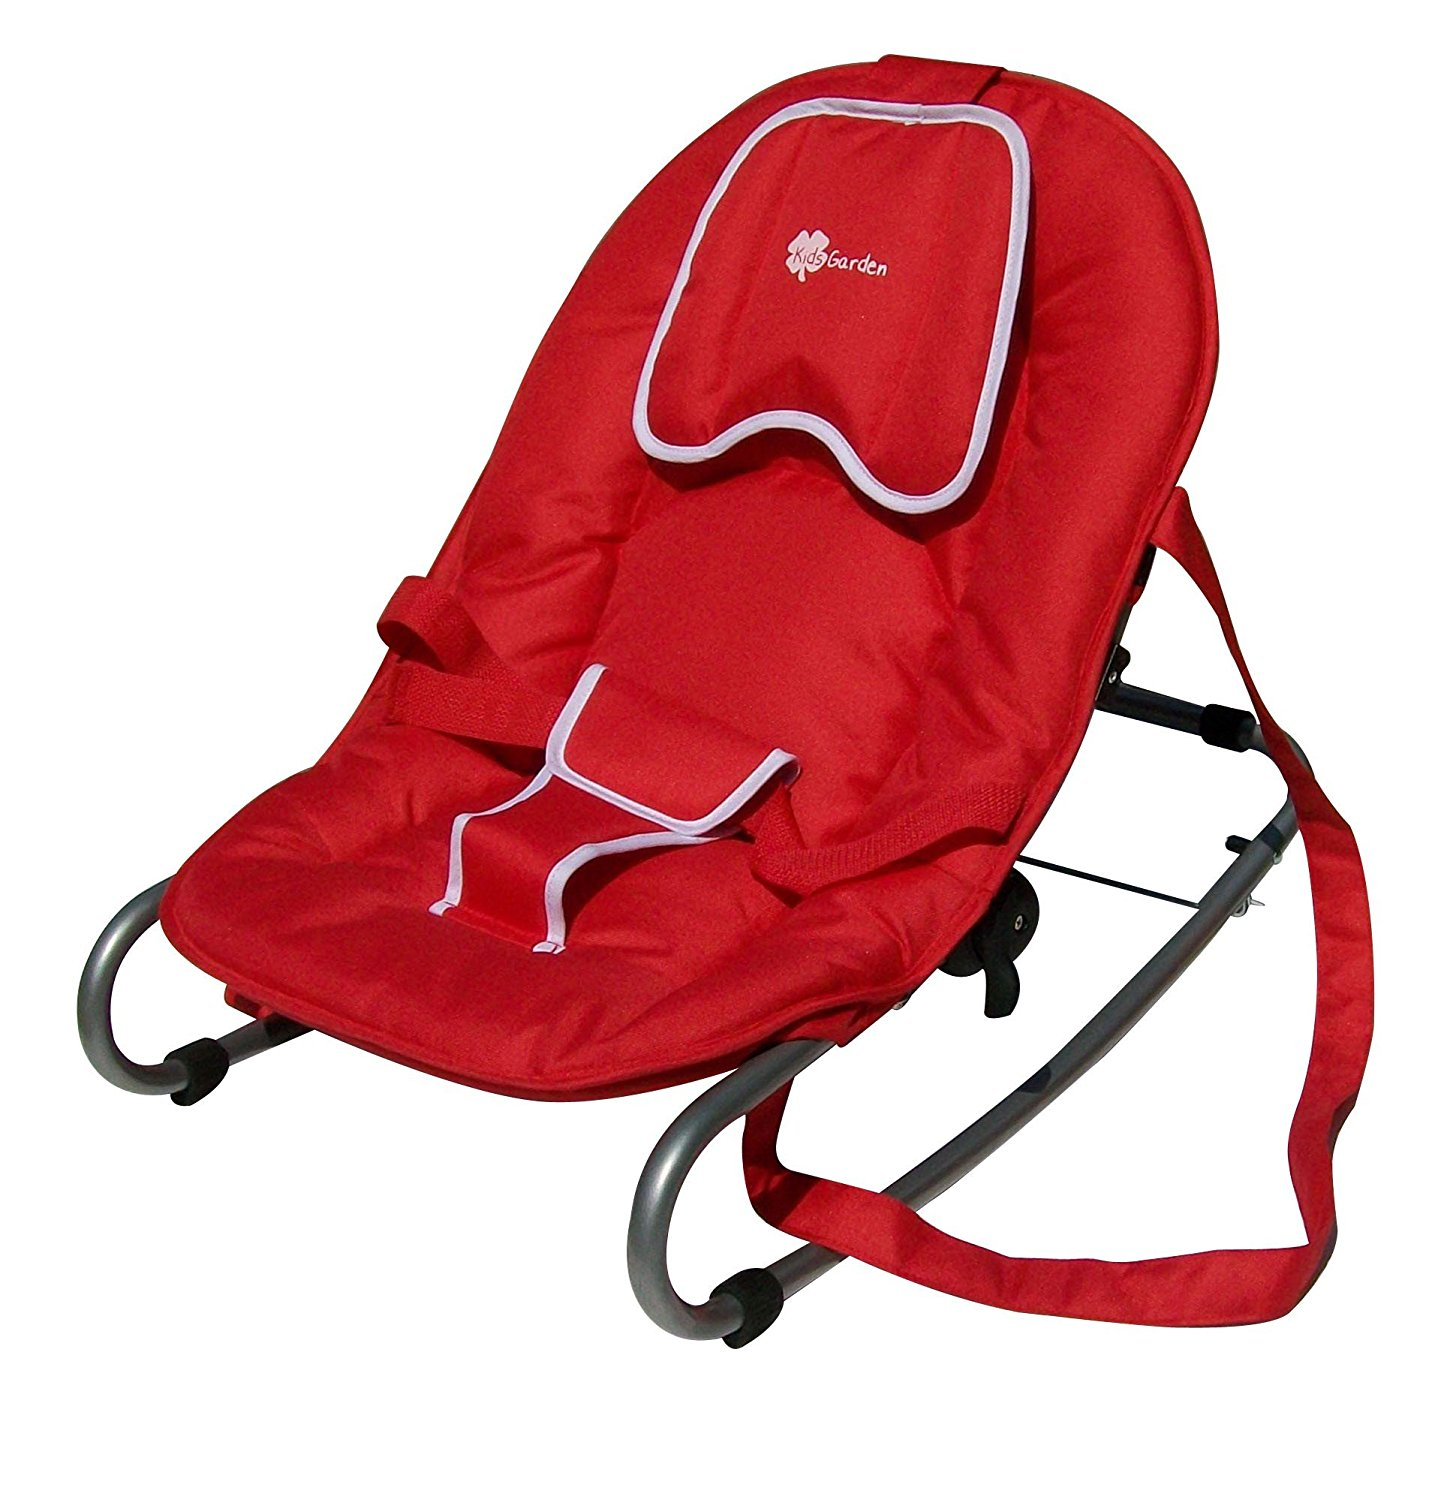 United Kids A603 Babywippe